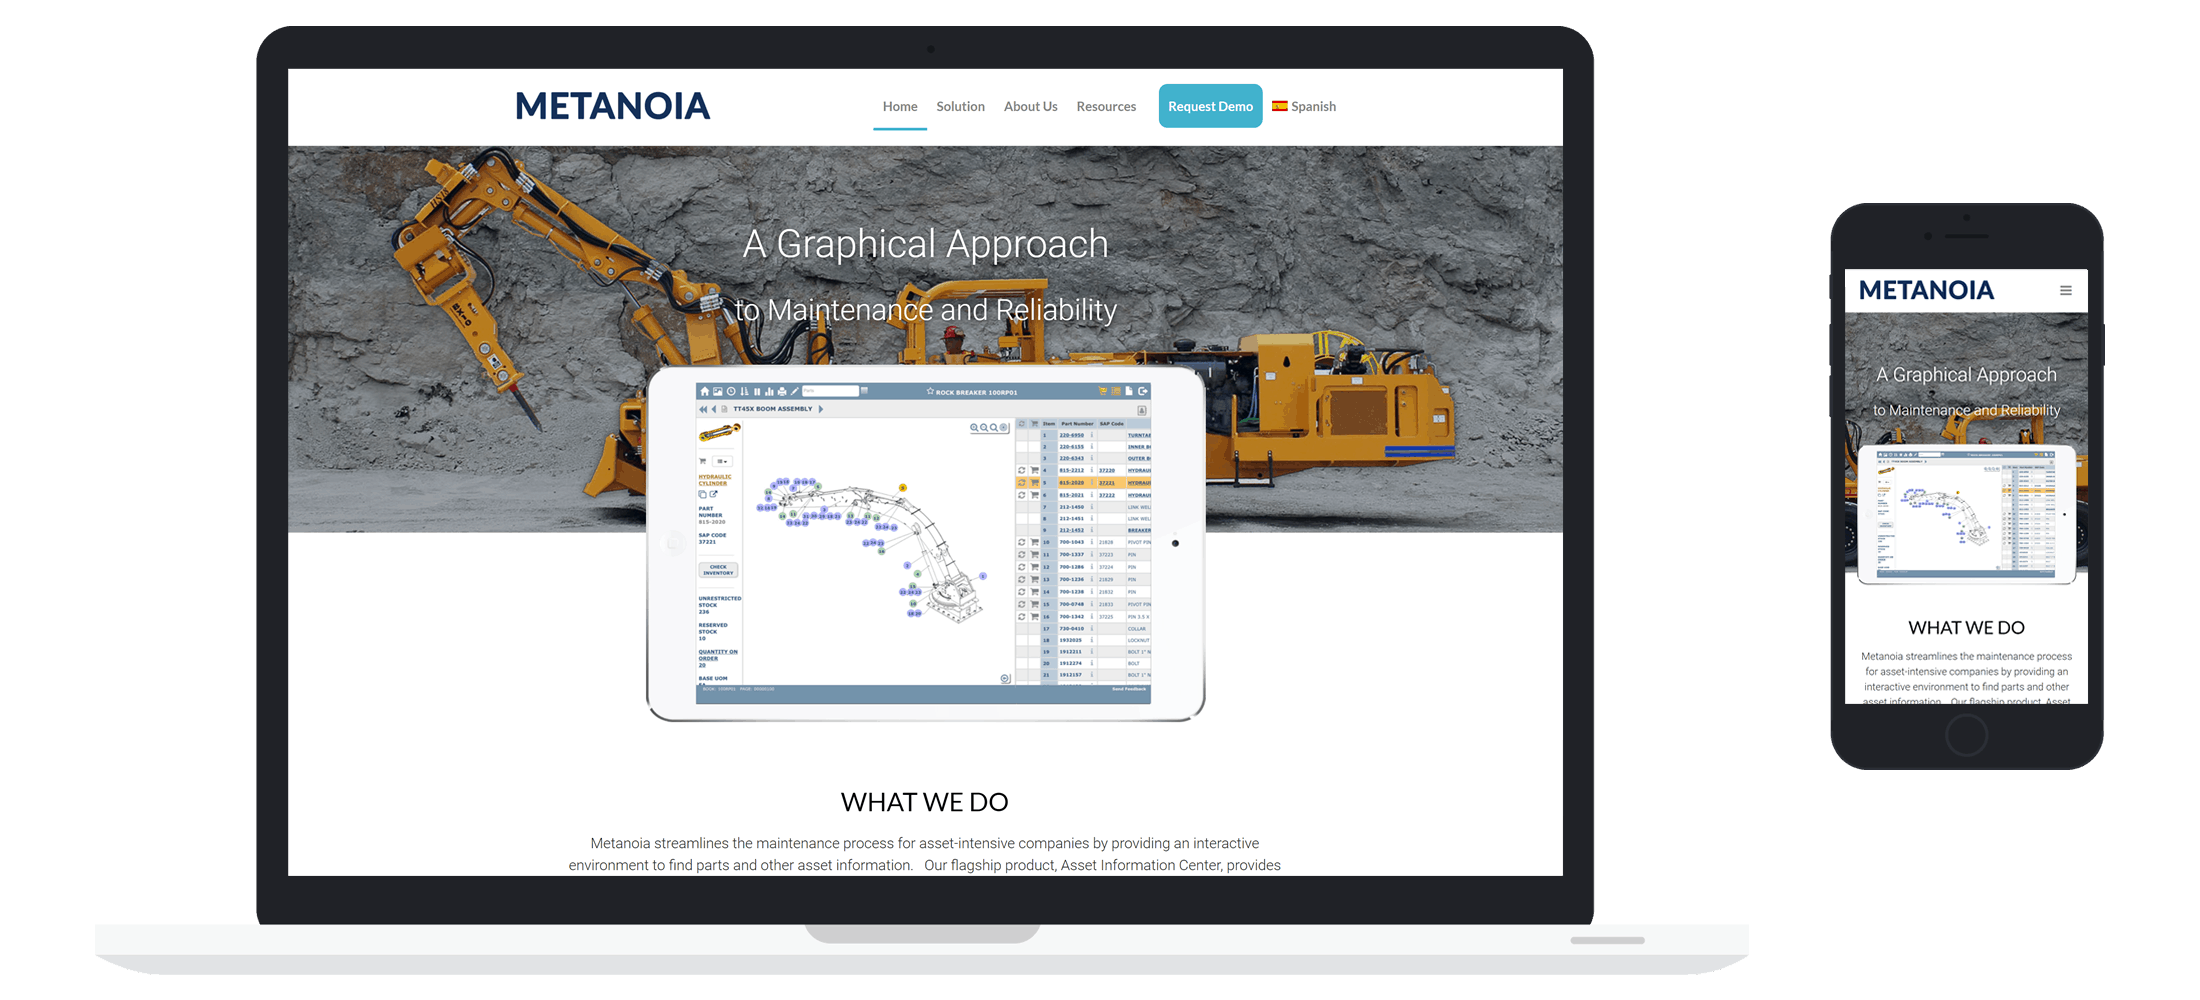 Managed IT Website client - Metanoia Case Study